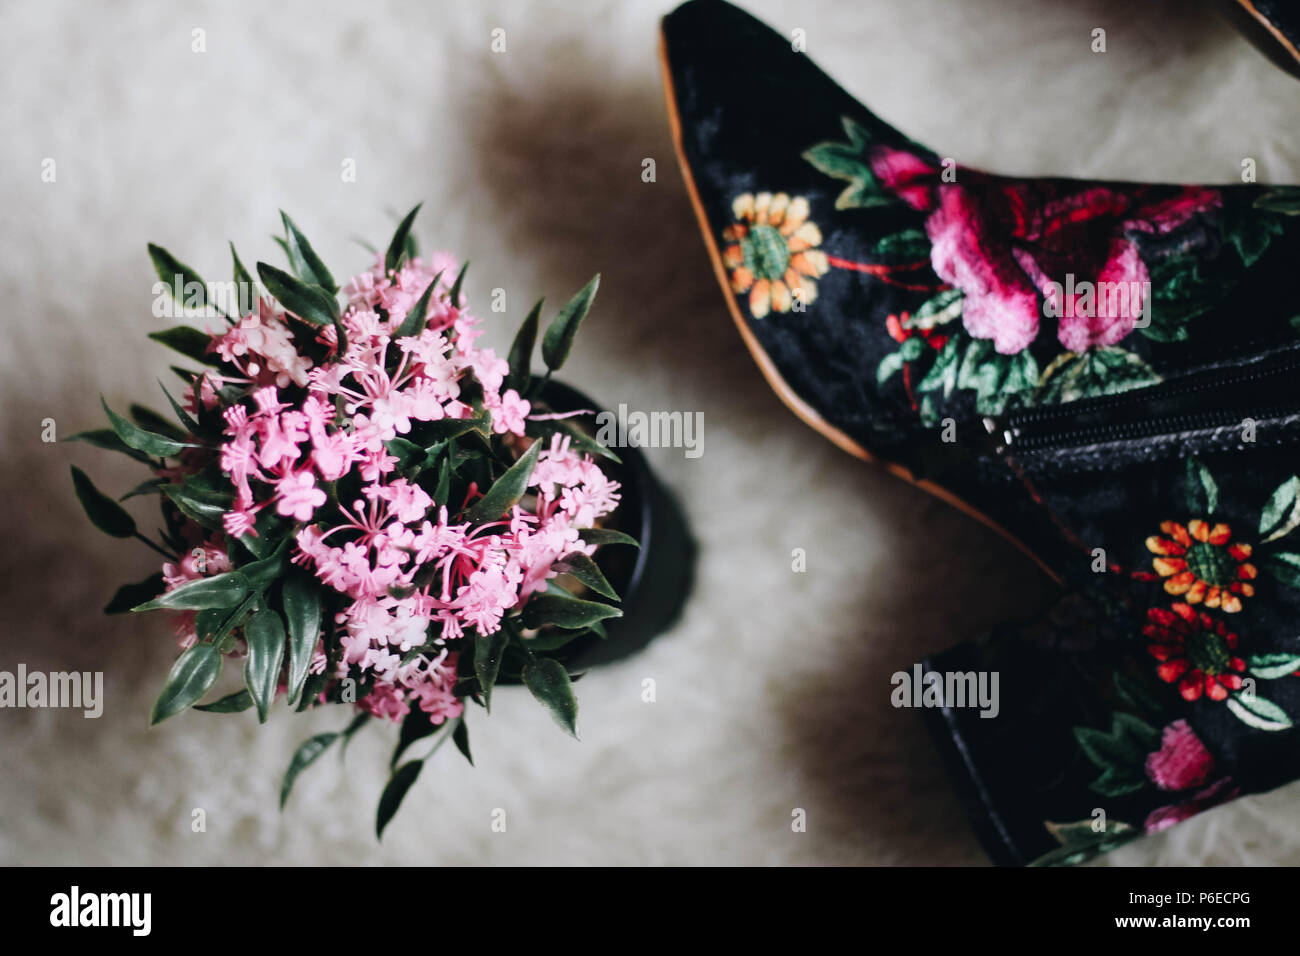 Fashion Floral Boots with Floral decor - Stock Image